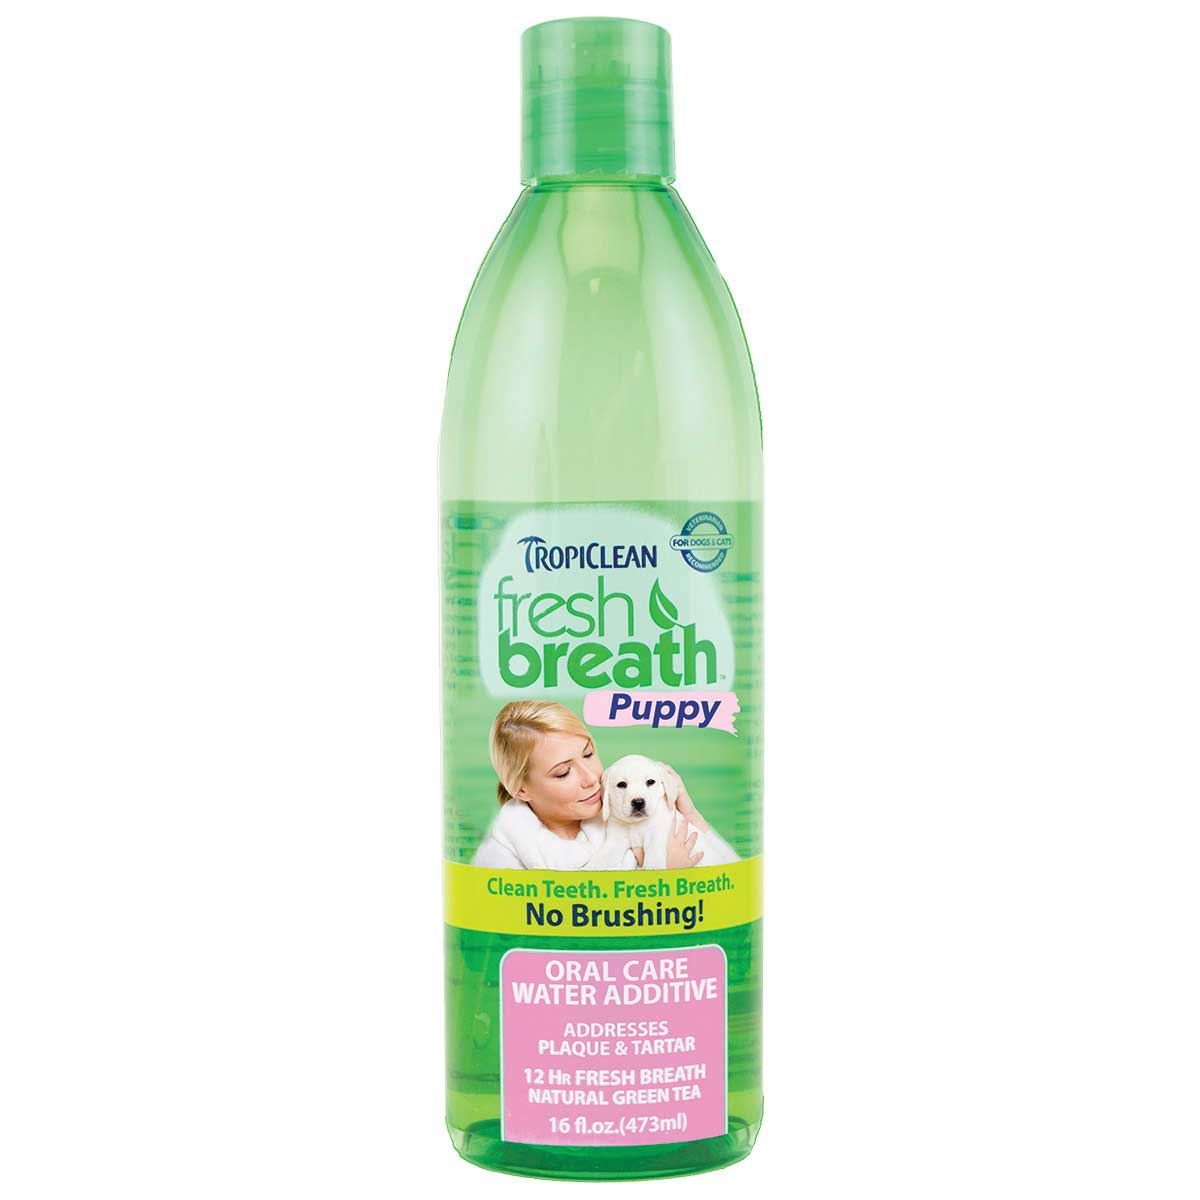 Tropiclean Fresh Breath Puppy Water Additive for Dogs 16 oz